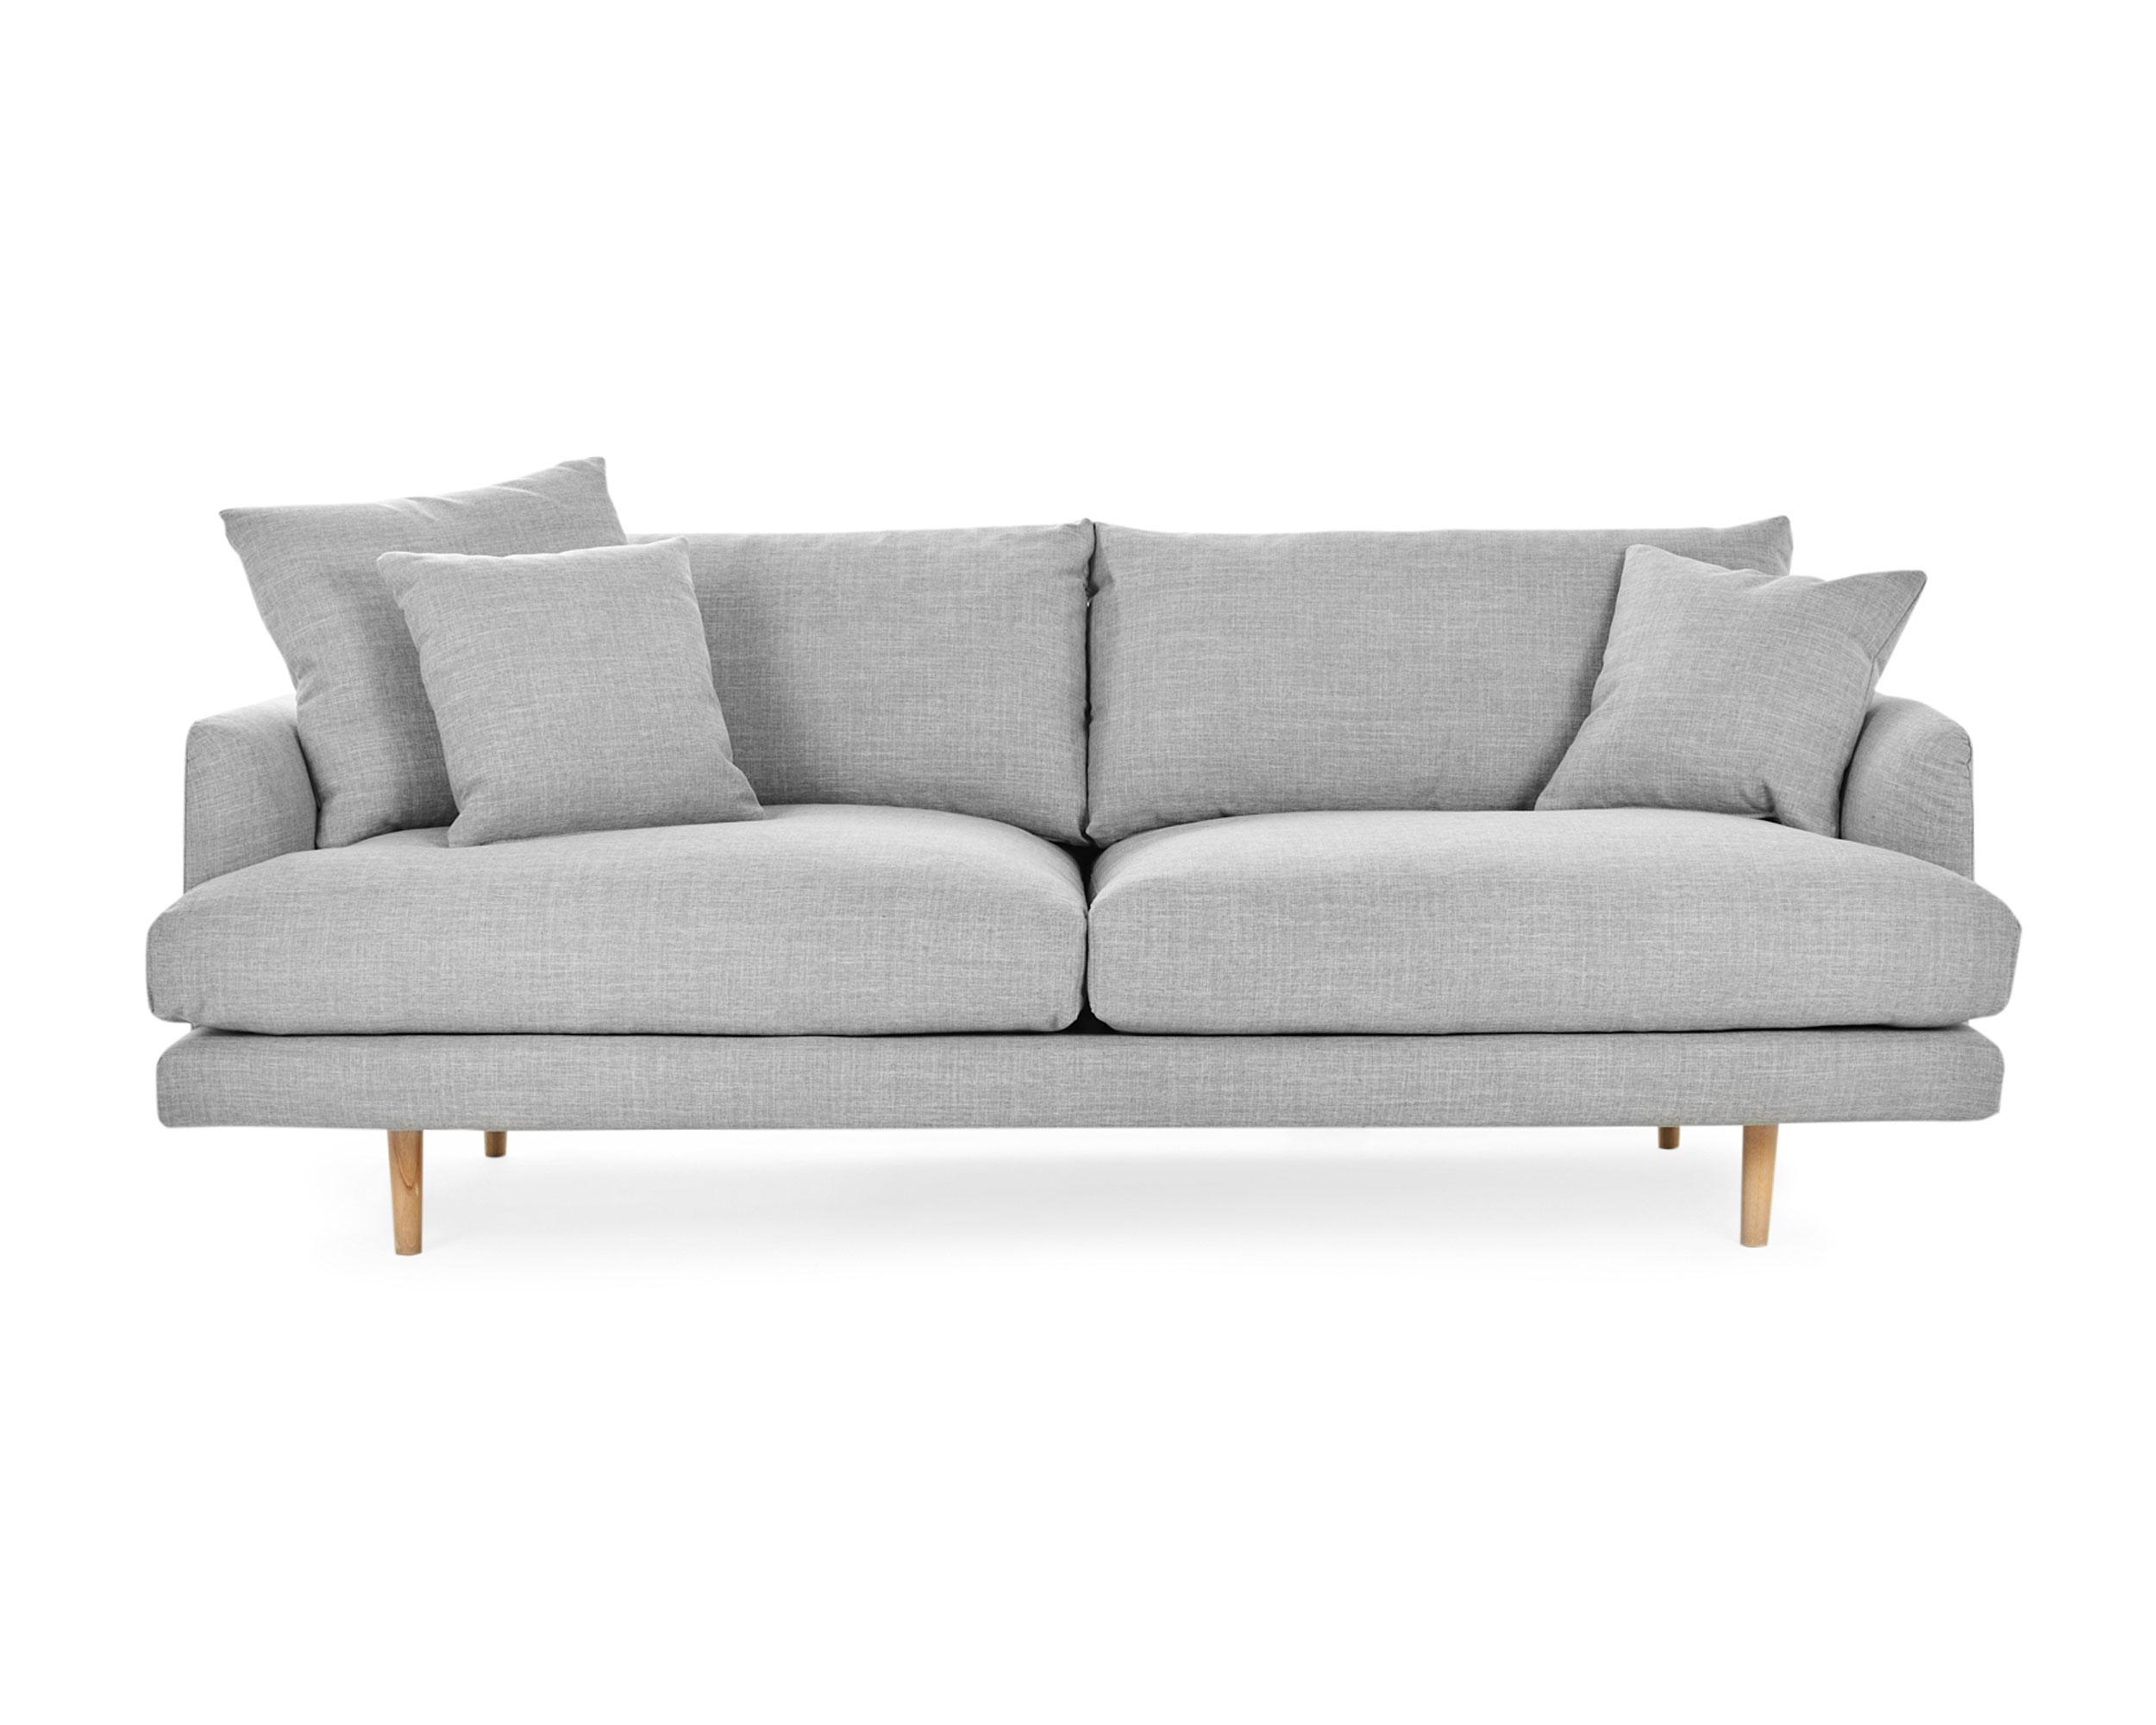 Hampton – 3 Seat Sofa | Loungelovers Within Modern 3 Seater Sofas (Image 7 of 20)